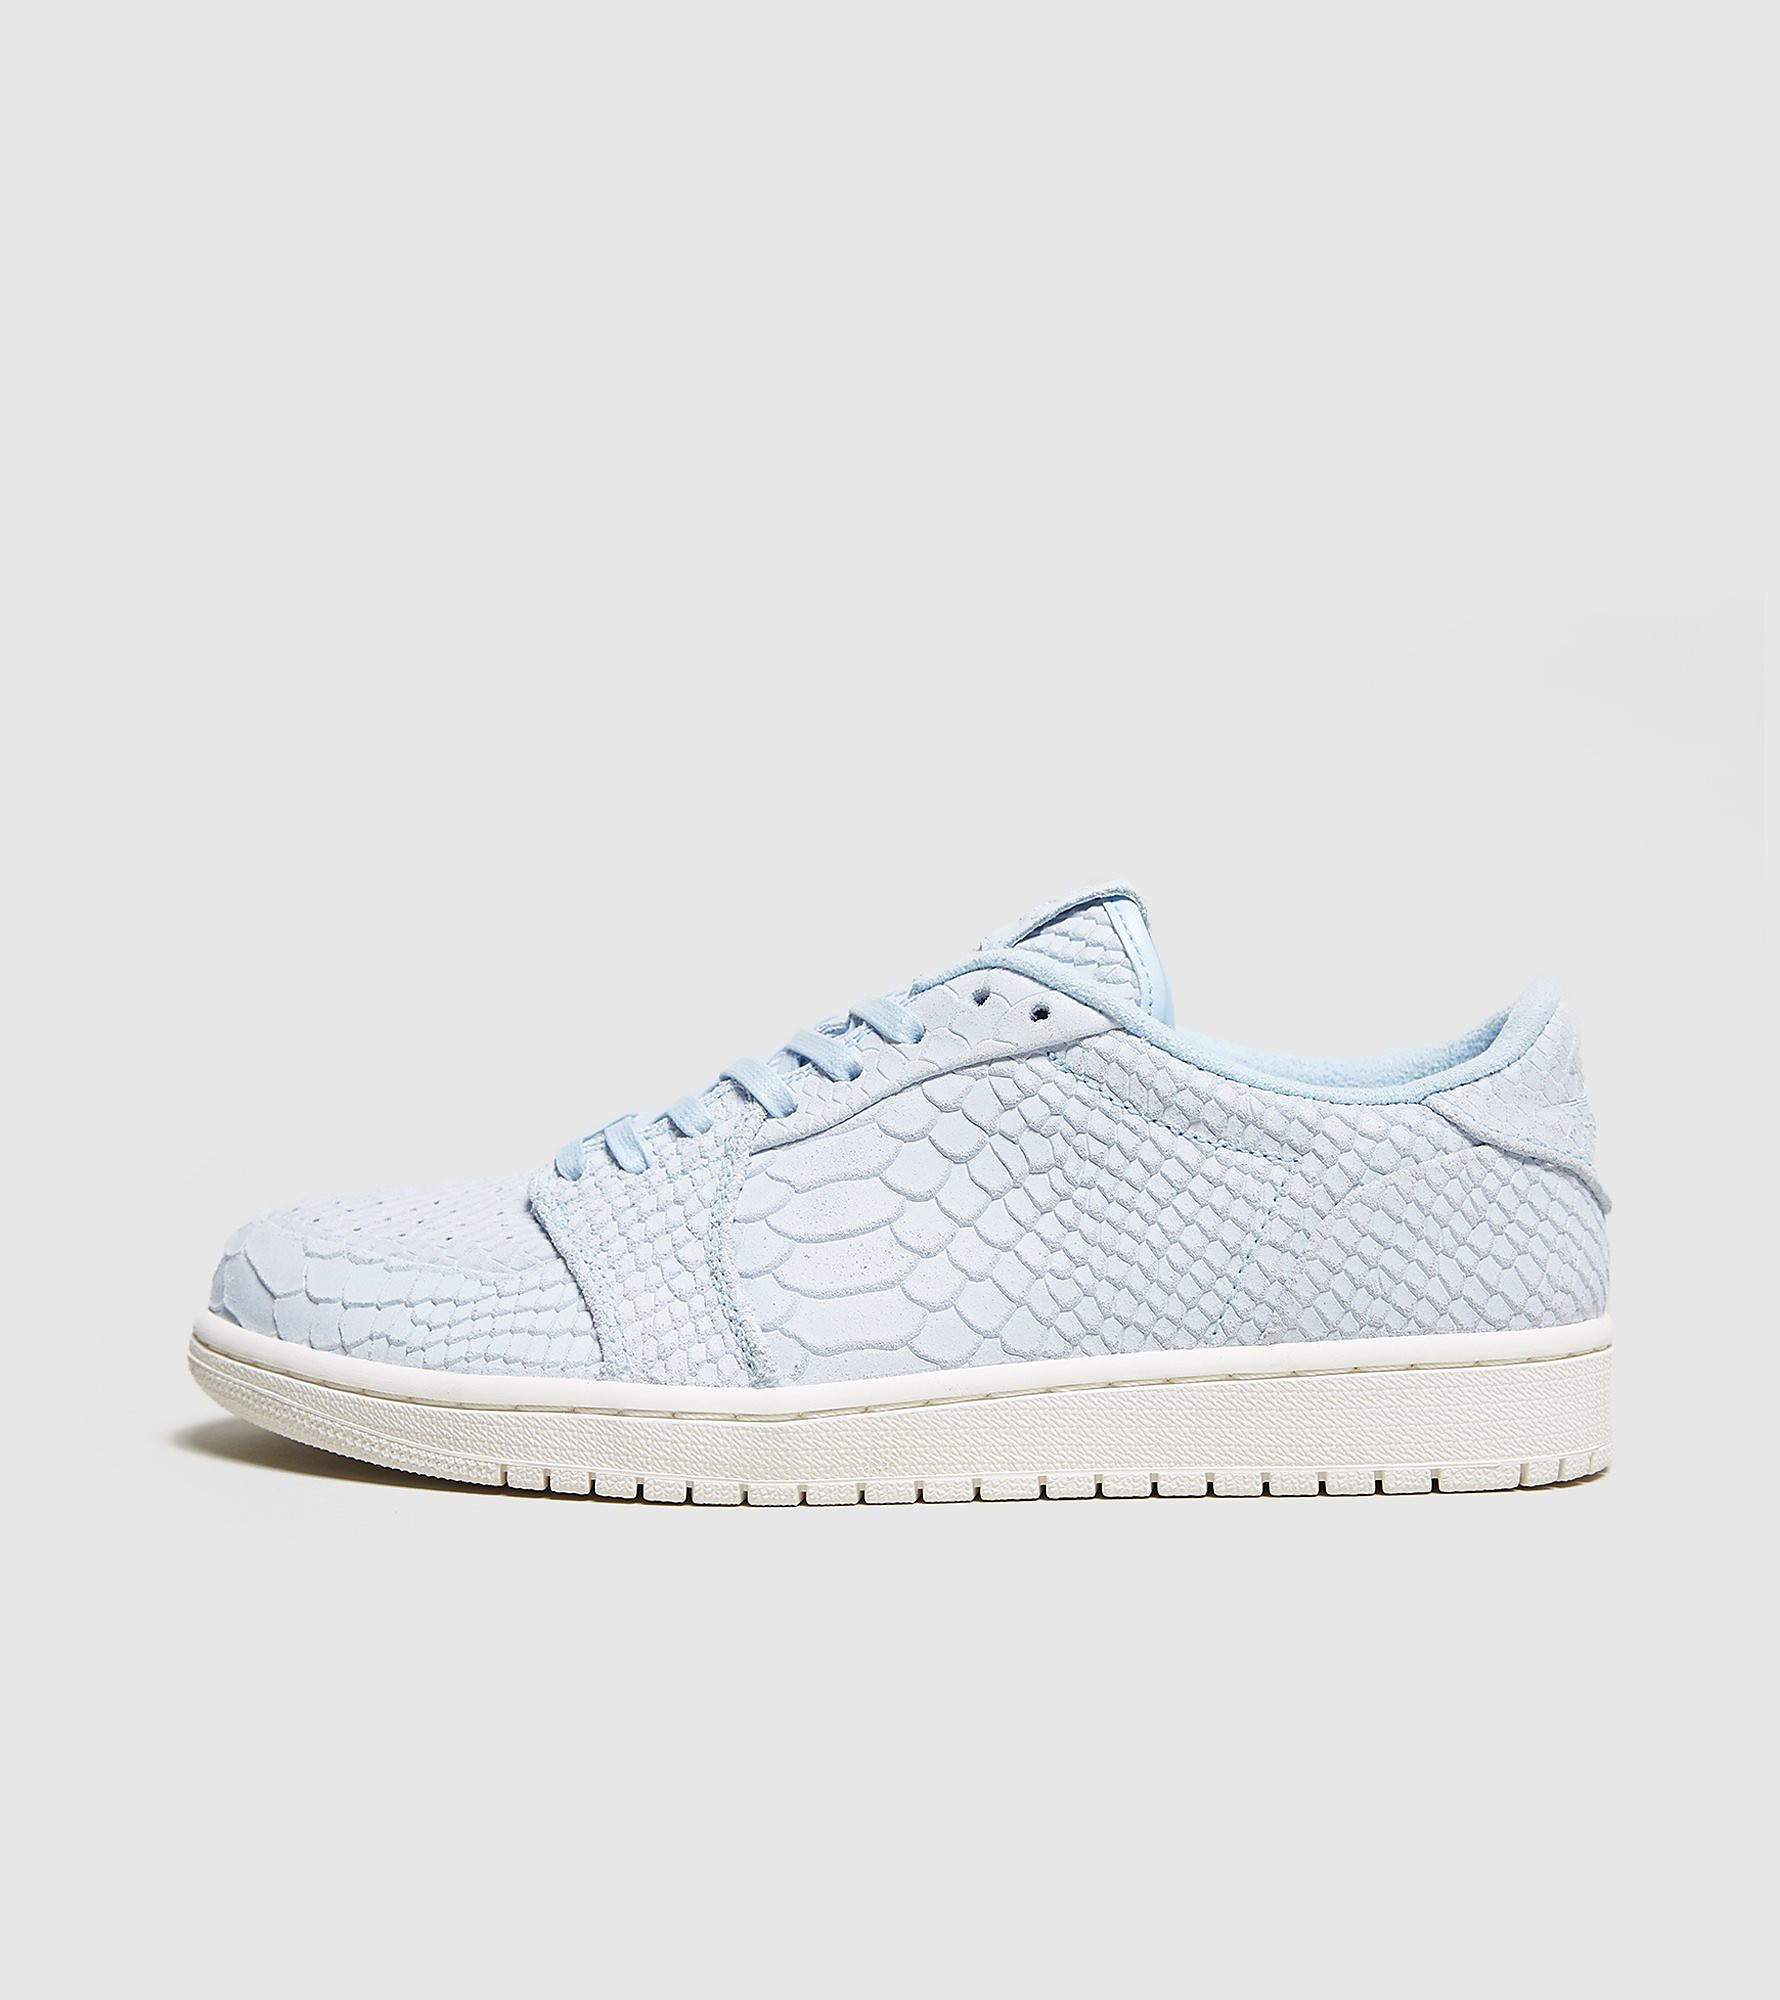 Jordan 1 Low Ice Blue